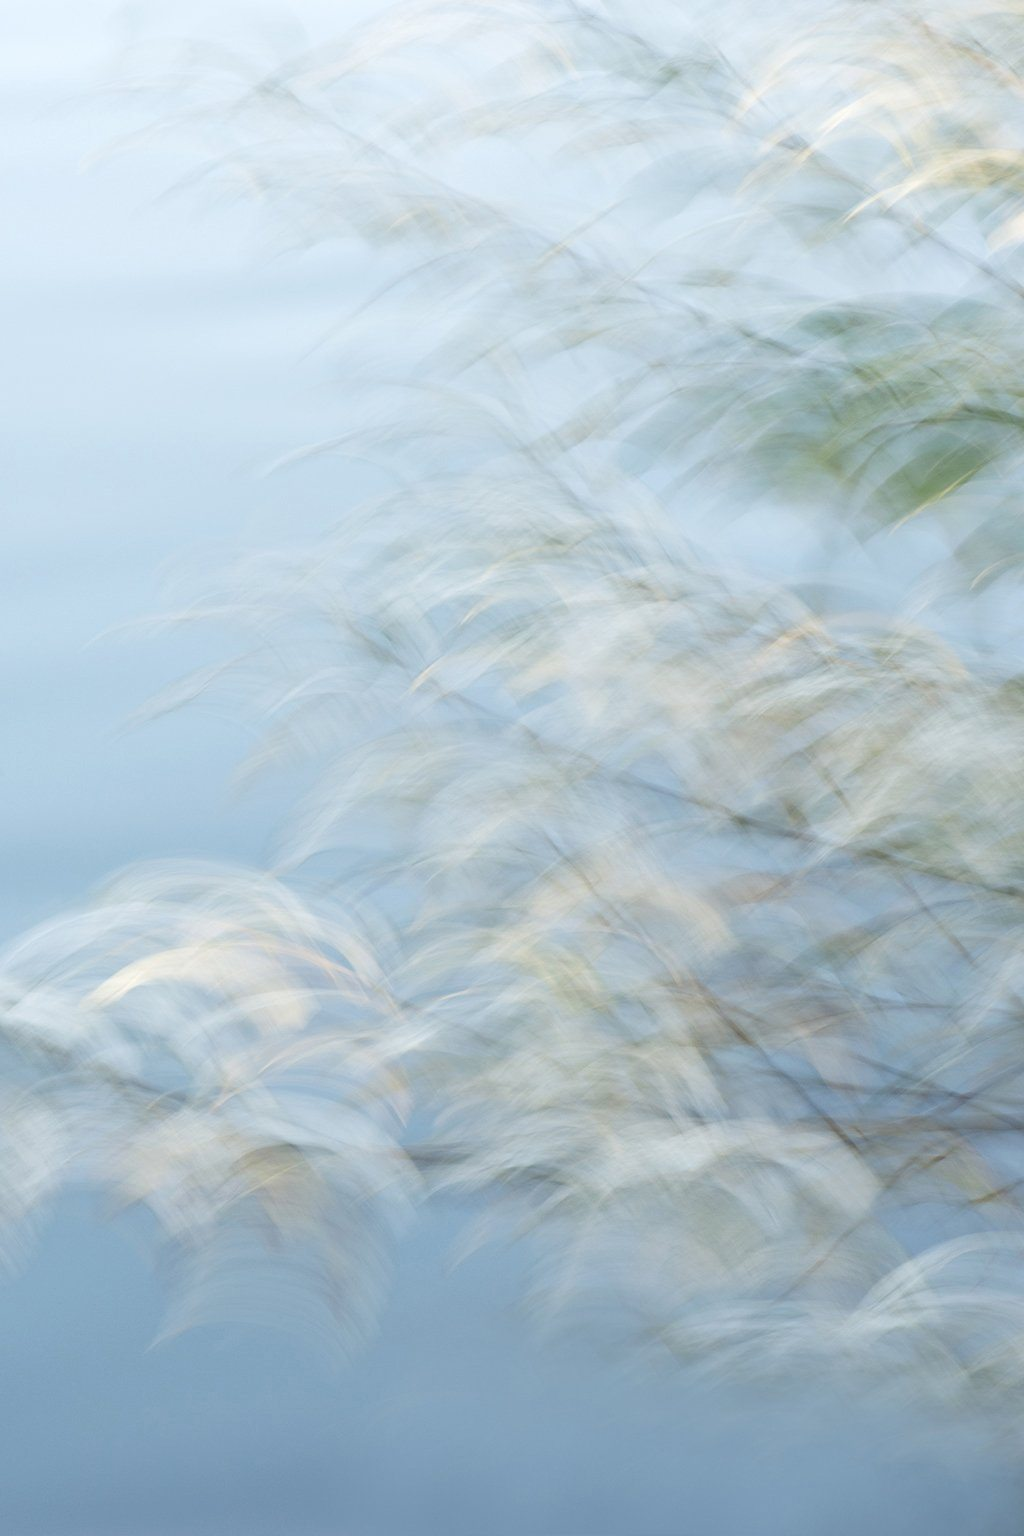 impressionistic nature photography for sale